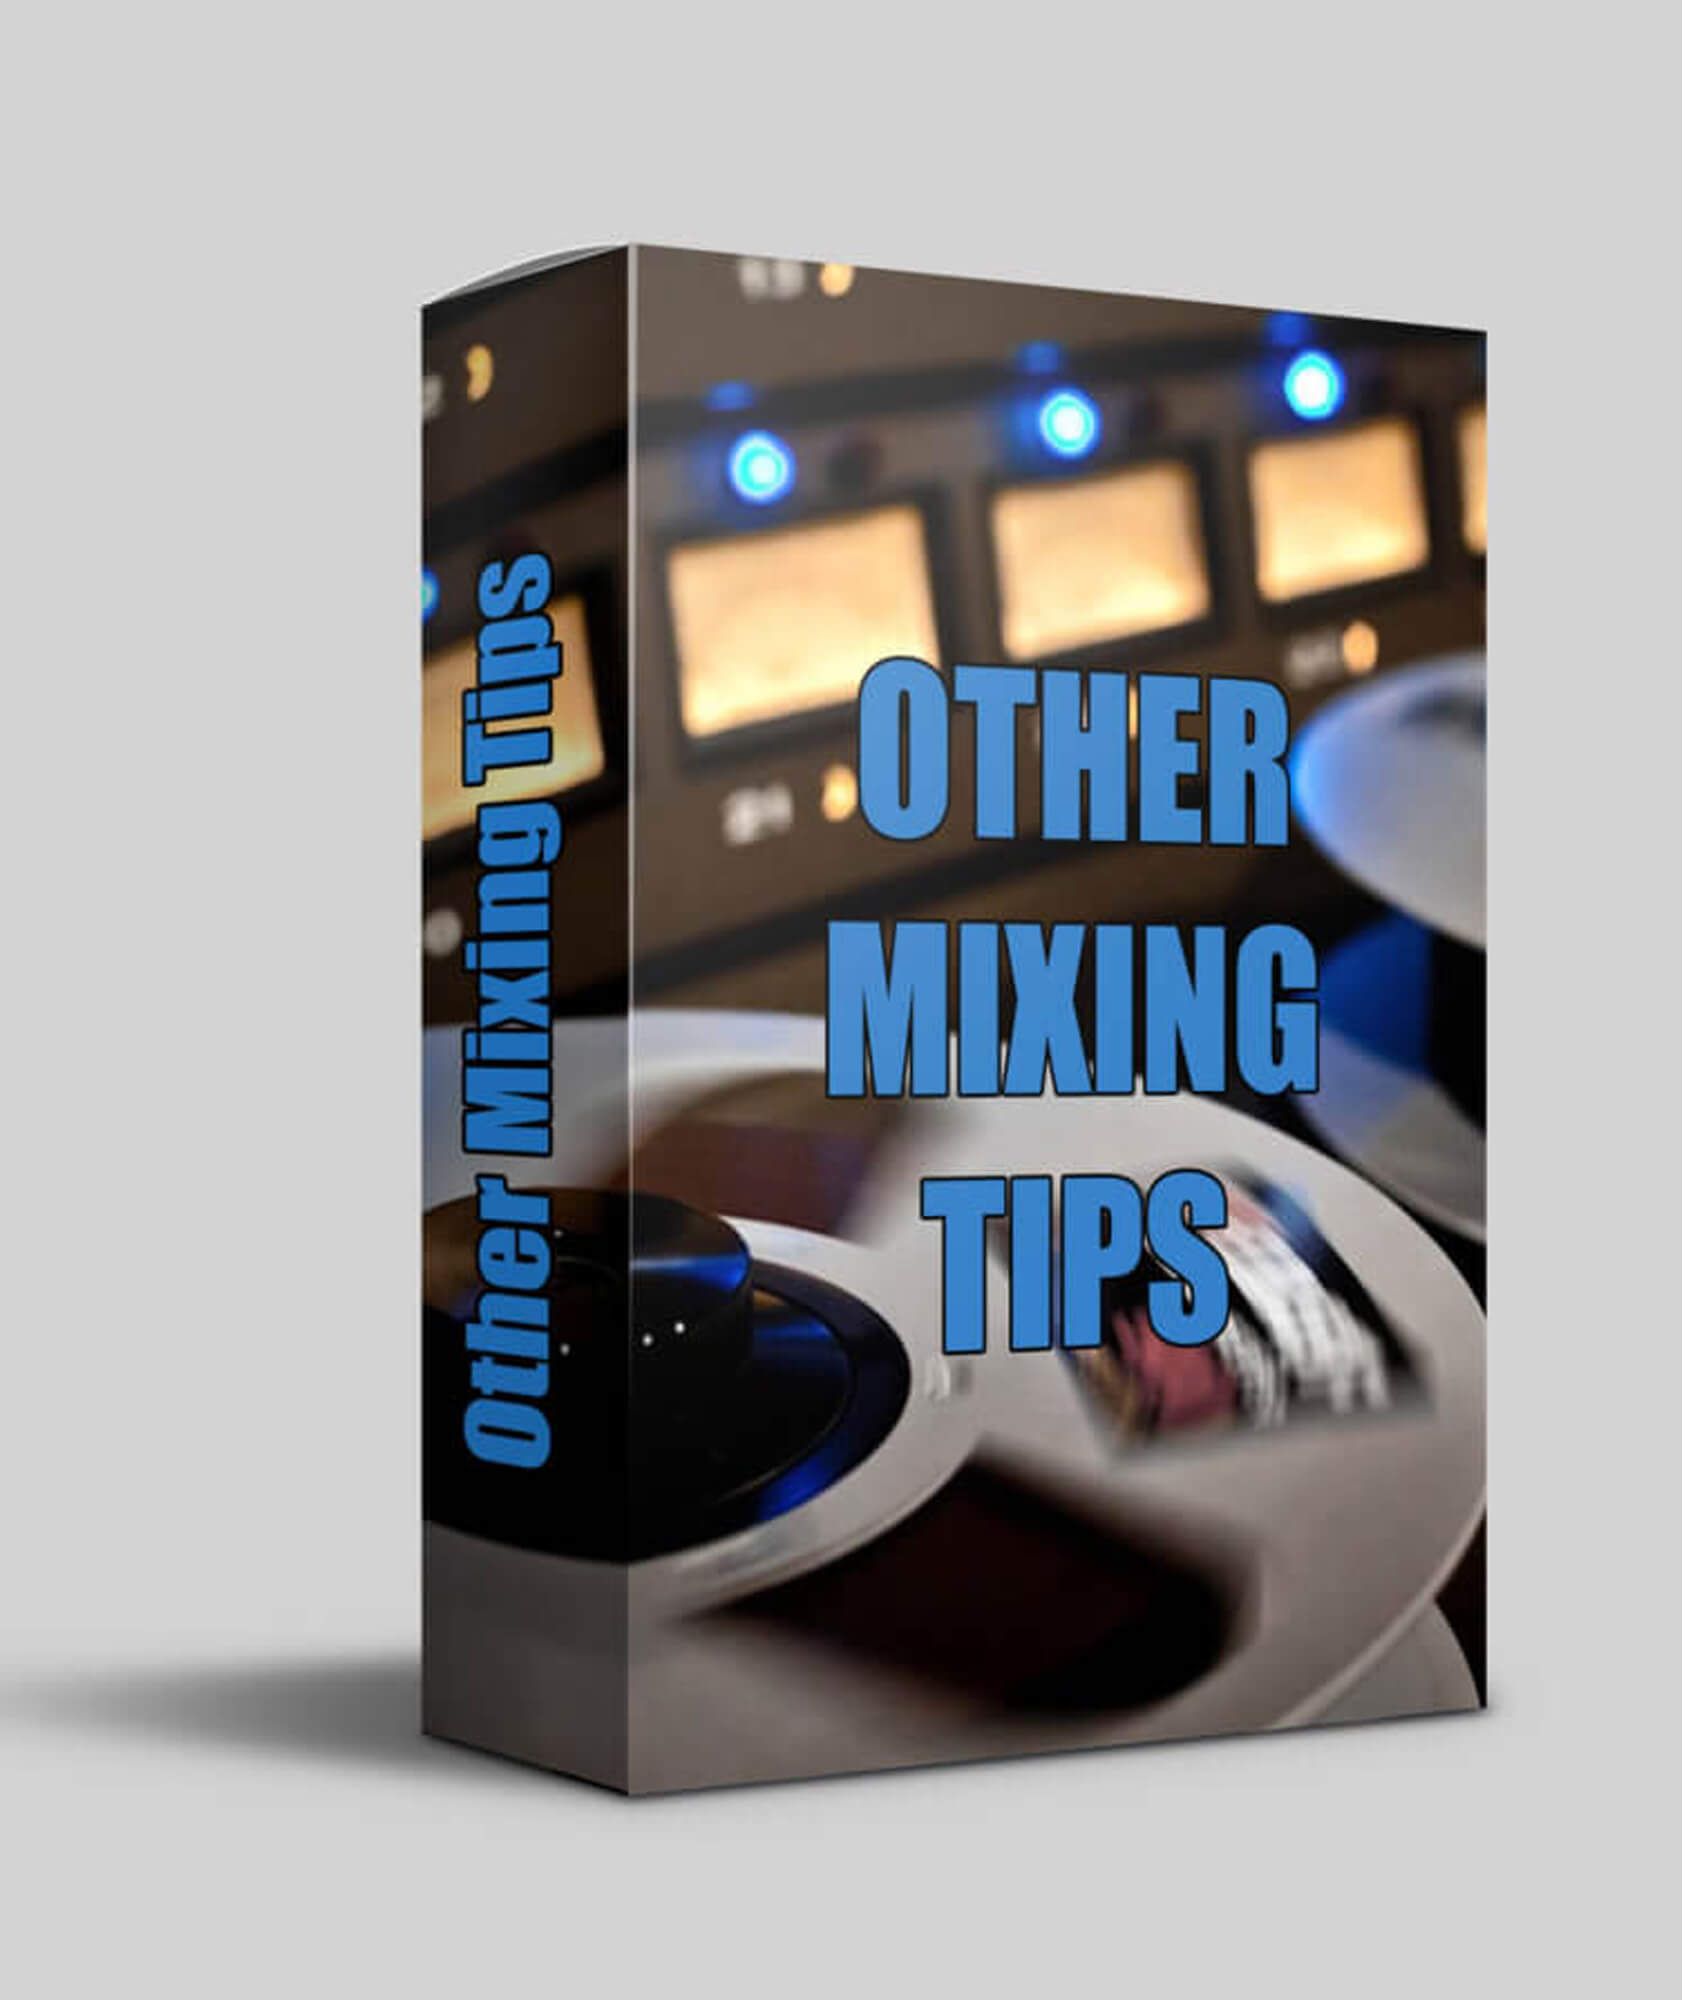 Other Mixing Tips